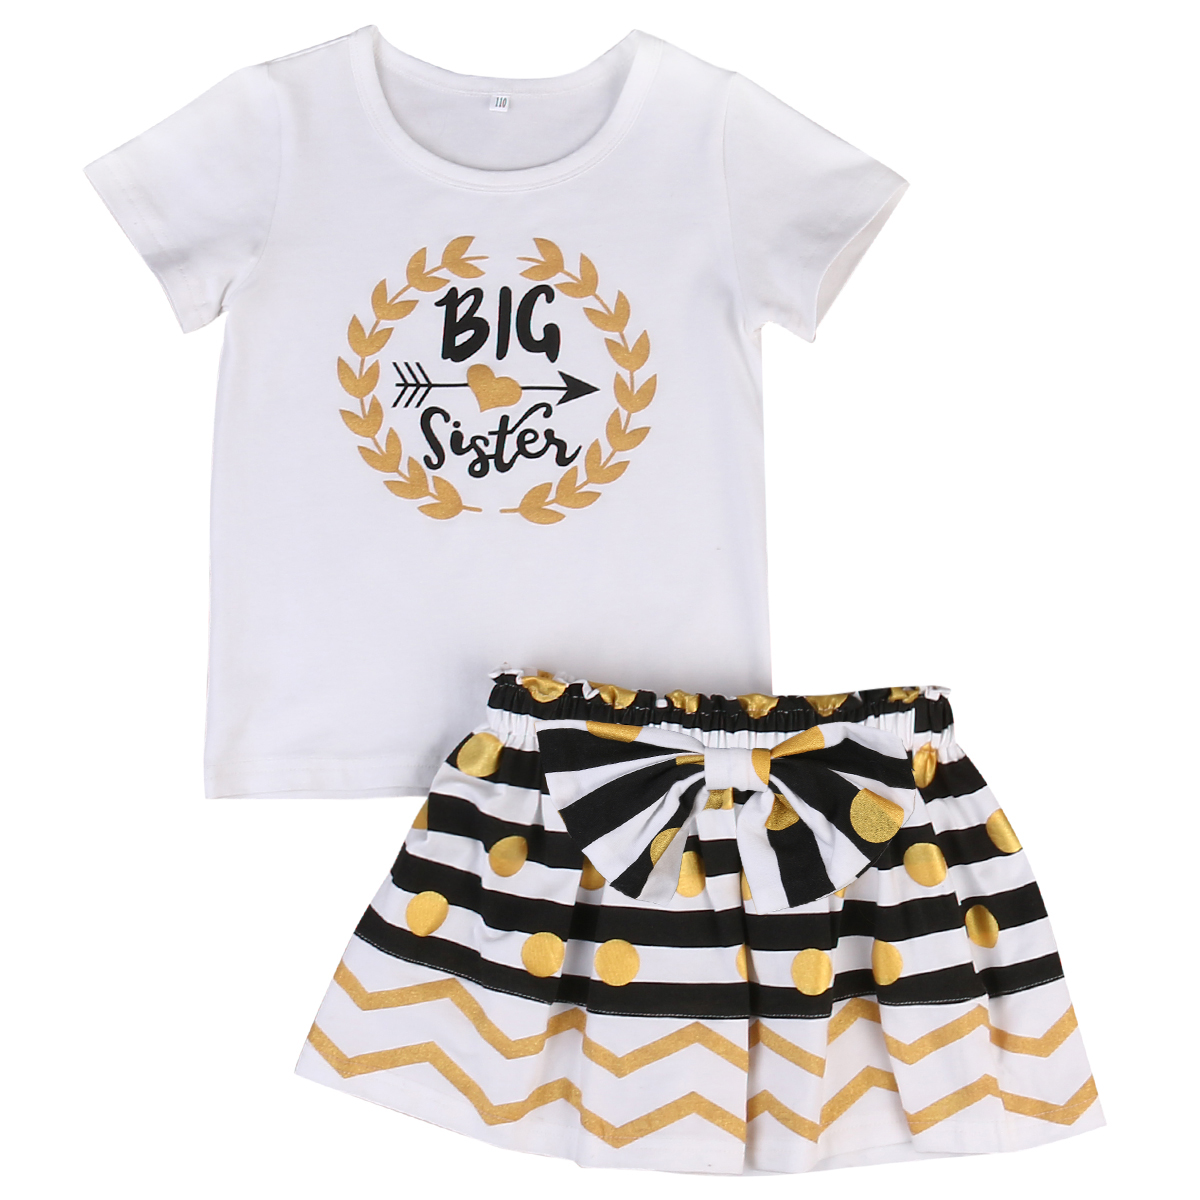 2017 Cute Newborn Baby Girl Clothes Set 0-7Y Little Sister Bodysuit Big Sister T-shirt +Bow Skirt 2PCS Outfits Children Clothes newborn infant baby girl little sister romper pants headband outfits set clothes children infant girls sister clothing set 2pcs